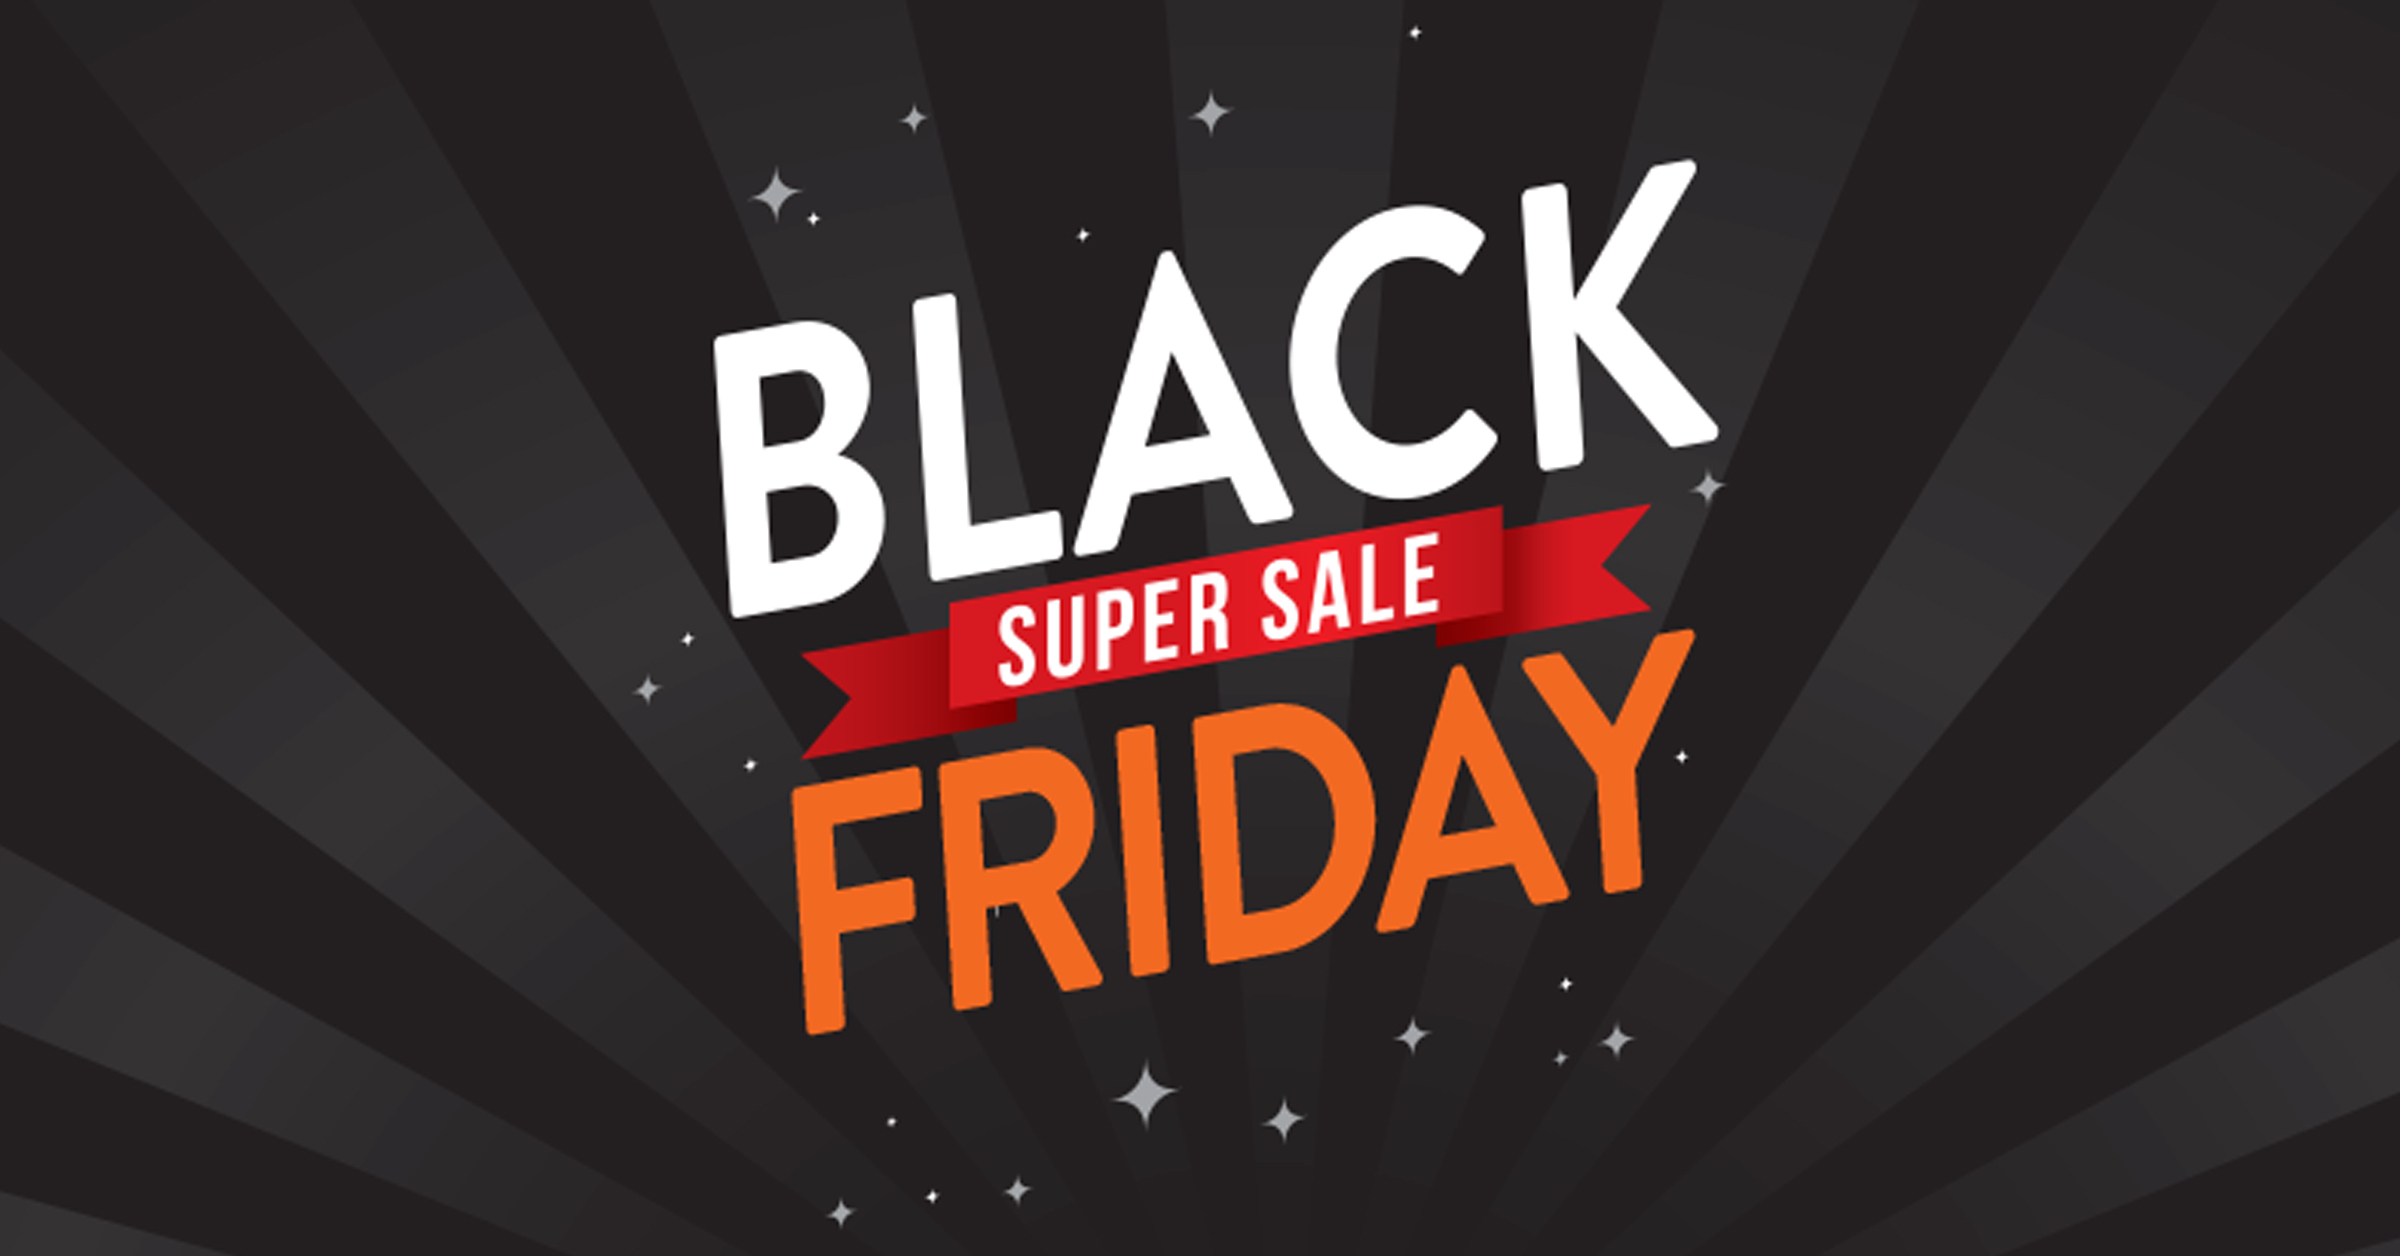 Www Black Friday Leaked Black Friday Cyber Monday Deals At Gazelle Gazelle The